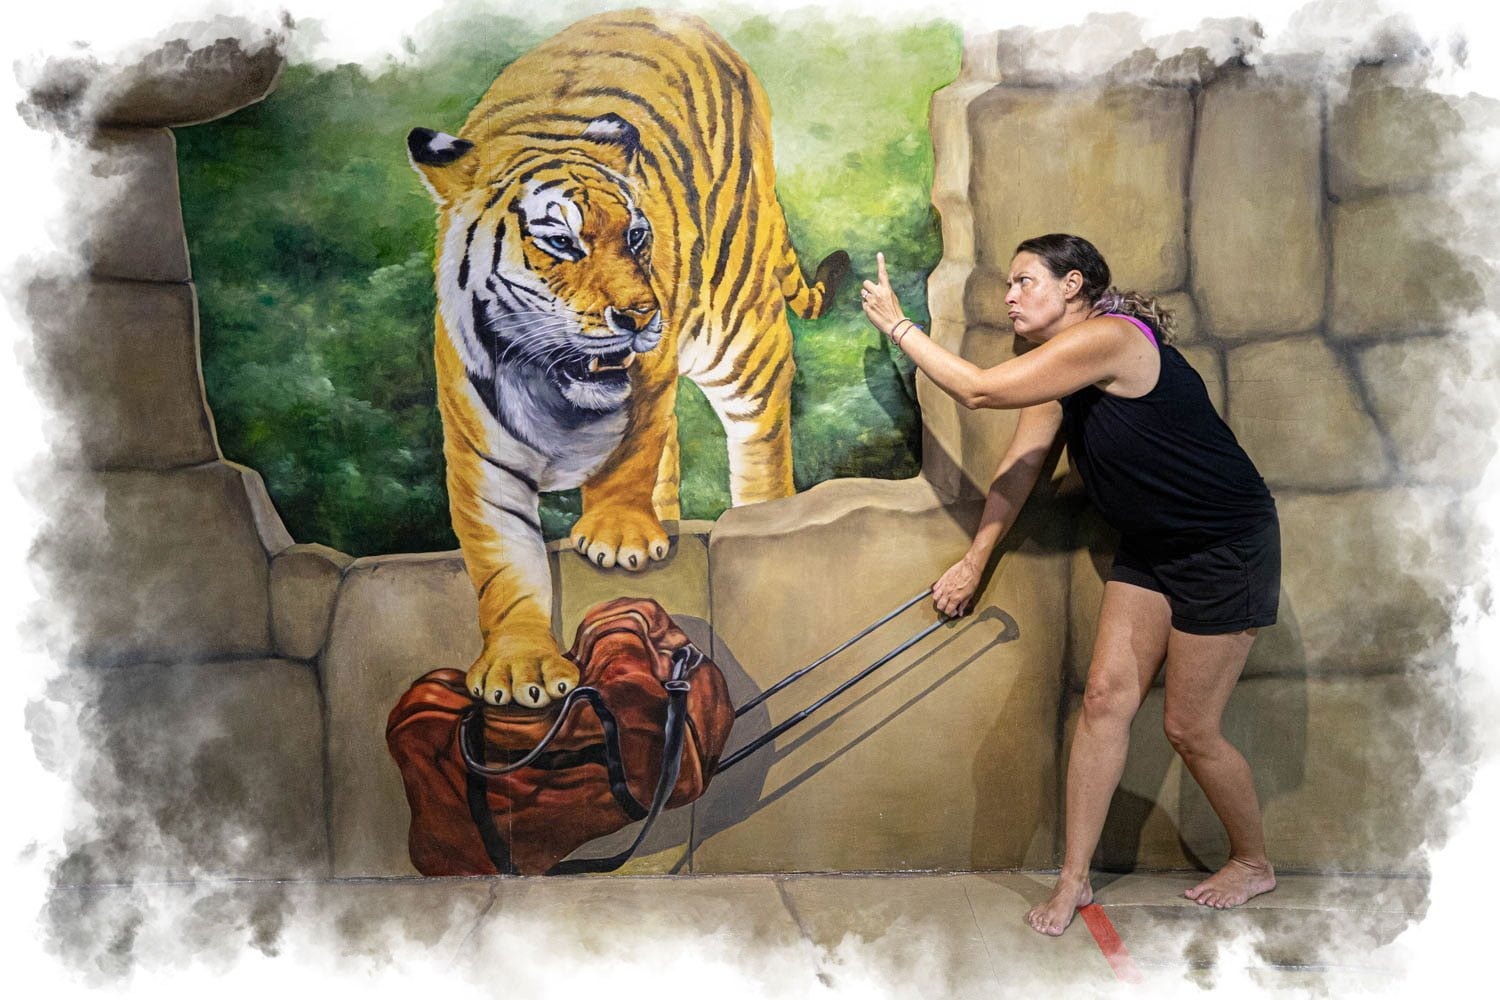 Our experience of the Phuket 3D Museum